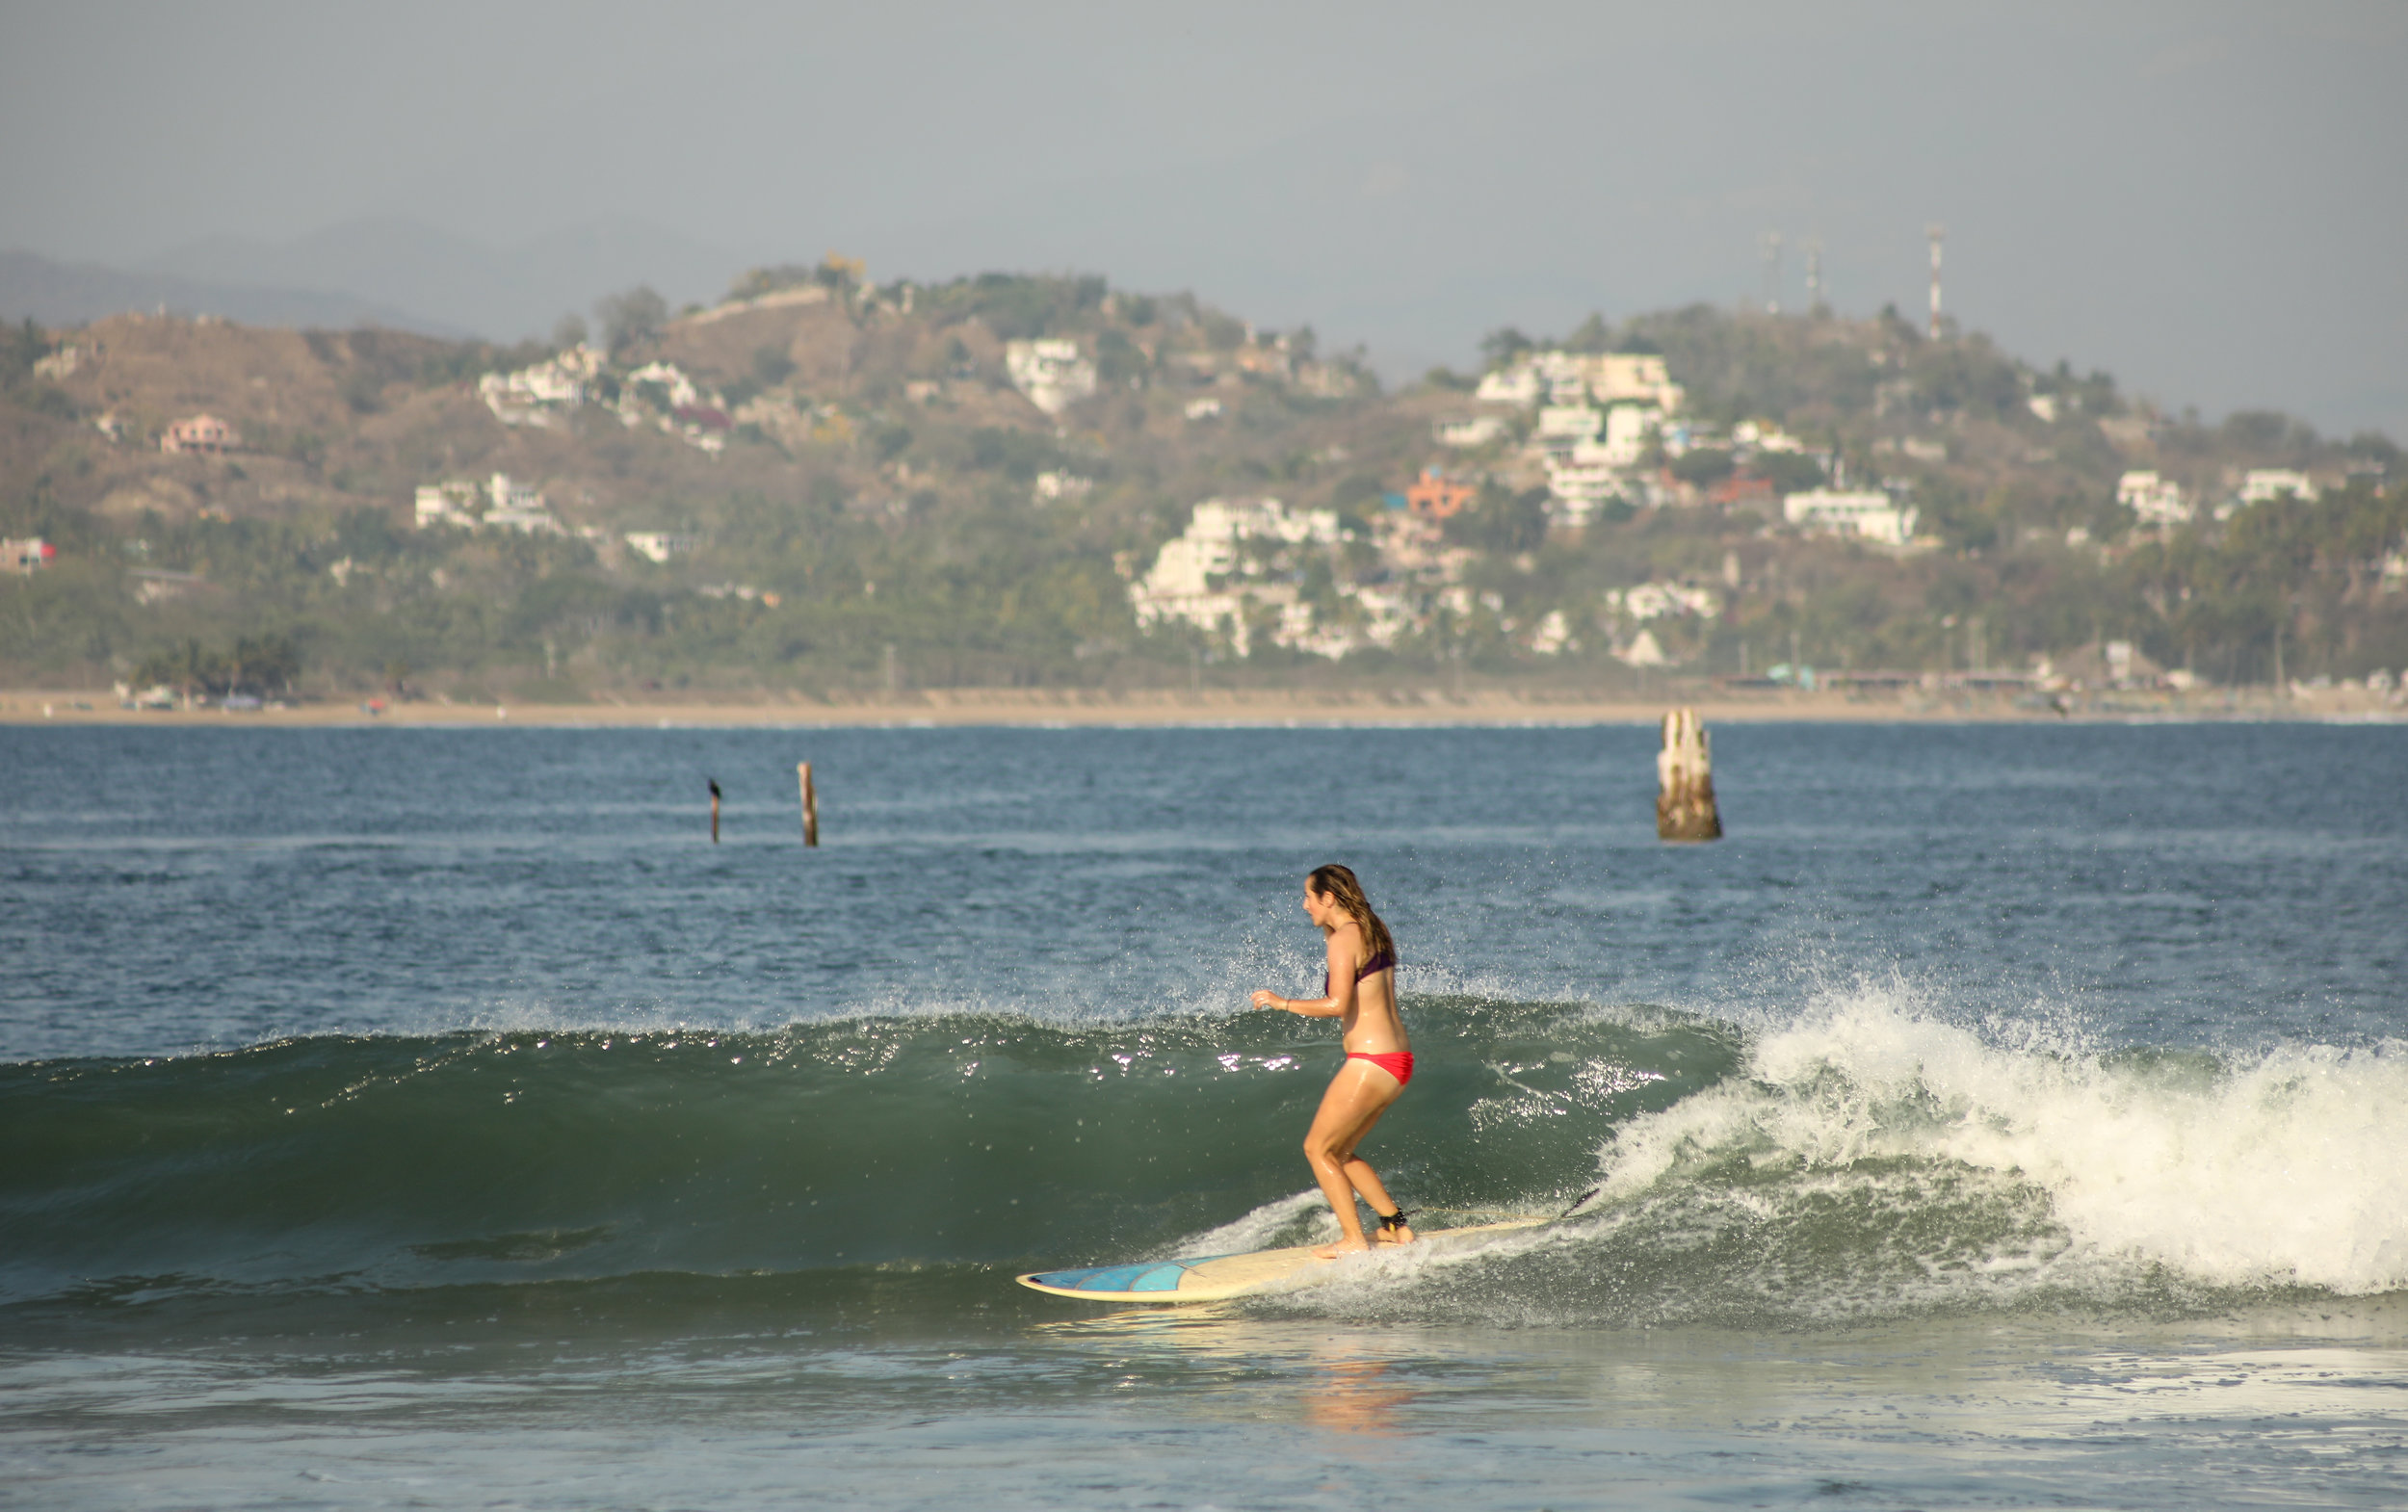 Carly Shredding with the wreck of San Luciano in the background.